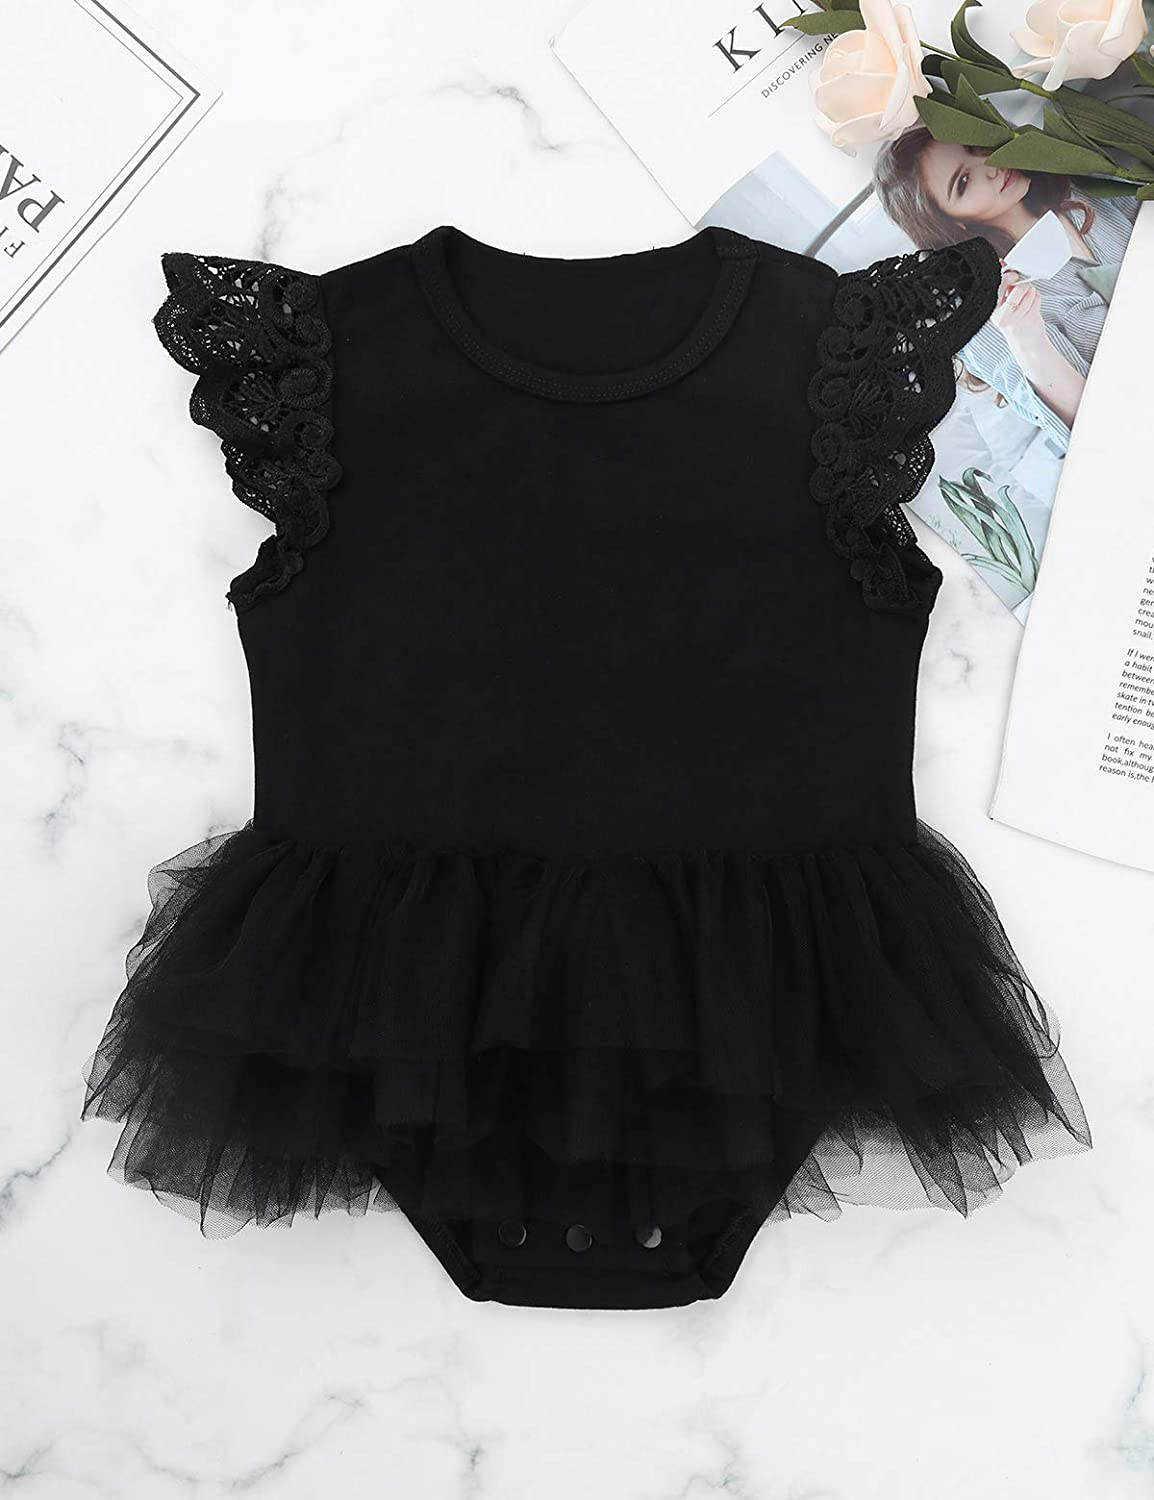 iEFiEL Infant Baby Girl Basic Ruffle Short Sleeve Cotton Romper Bodysuit Tops Shirts Summer Clothes